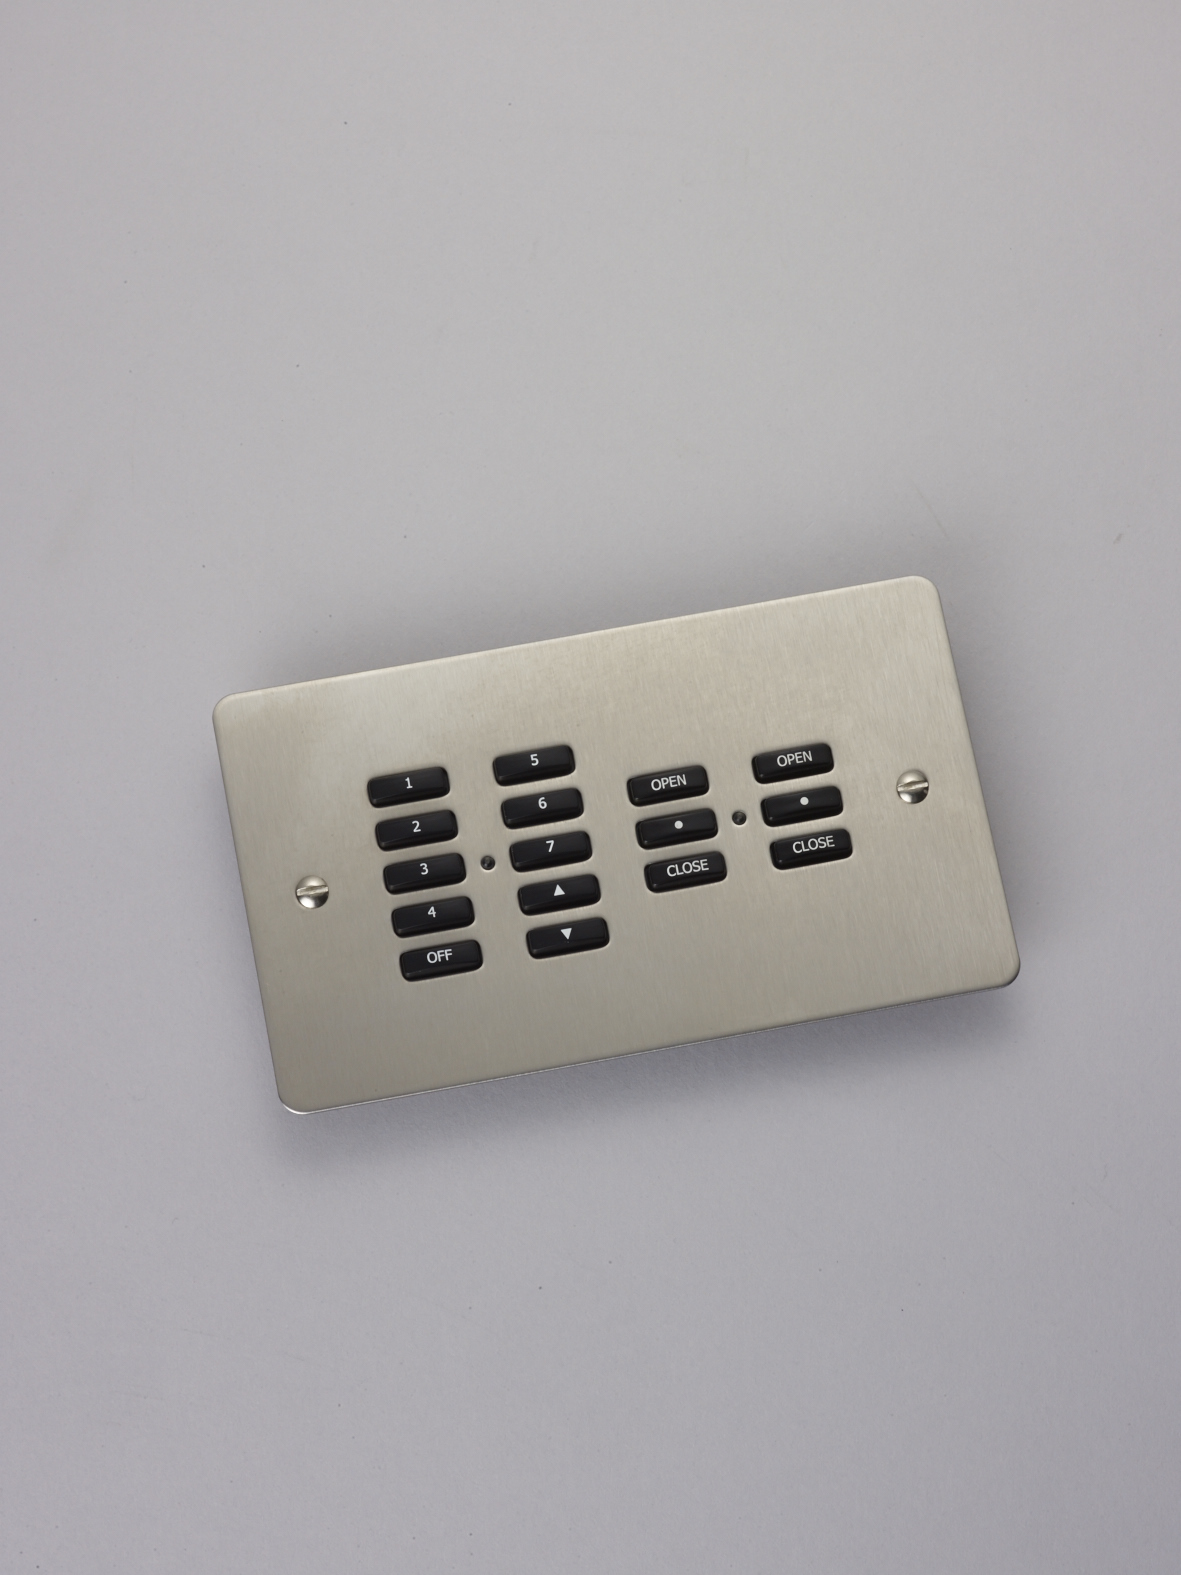 control multiple elements, such as lights and blinds, from a single keypad